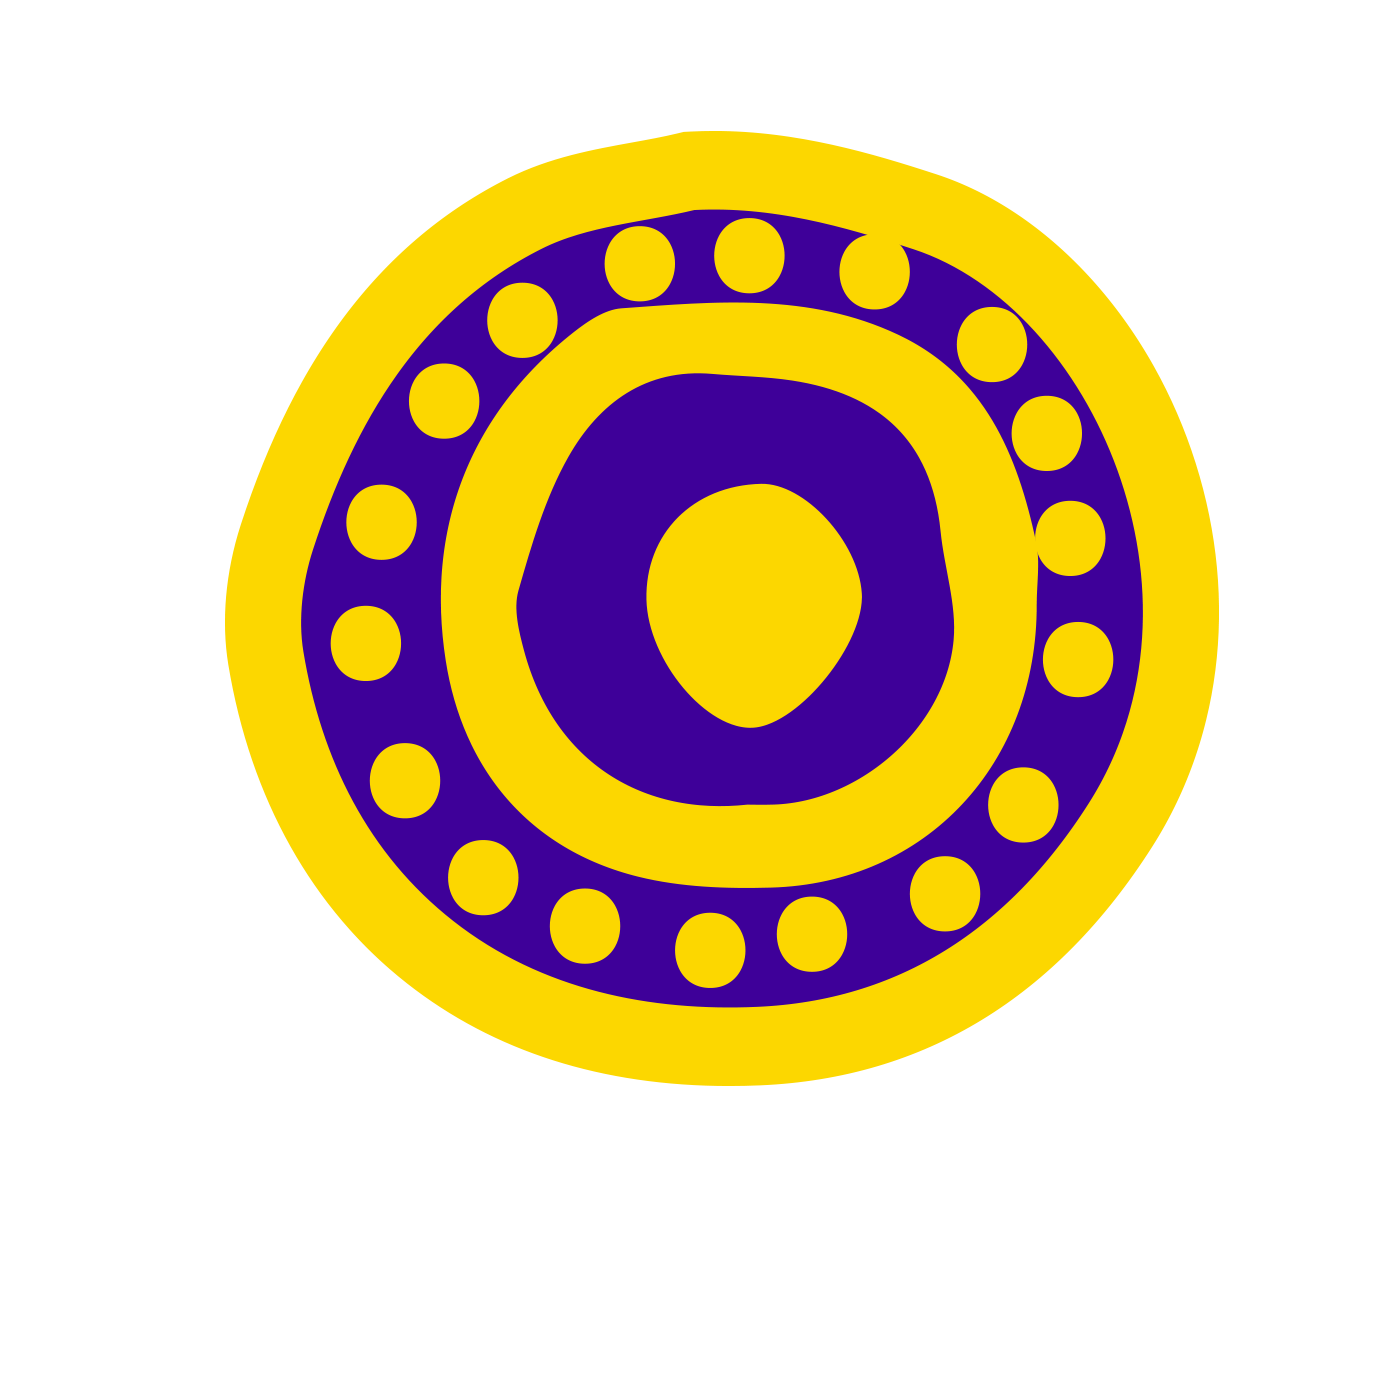 circle yellow purple.png